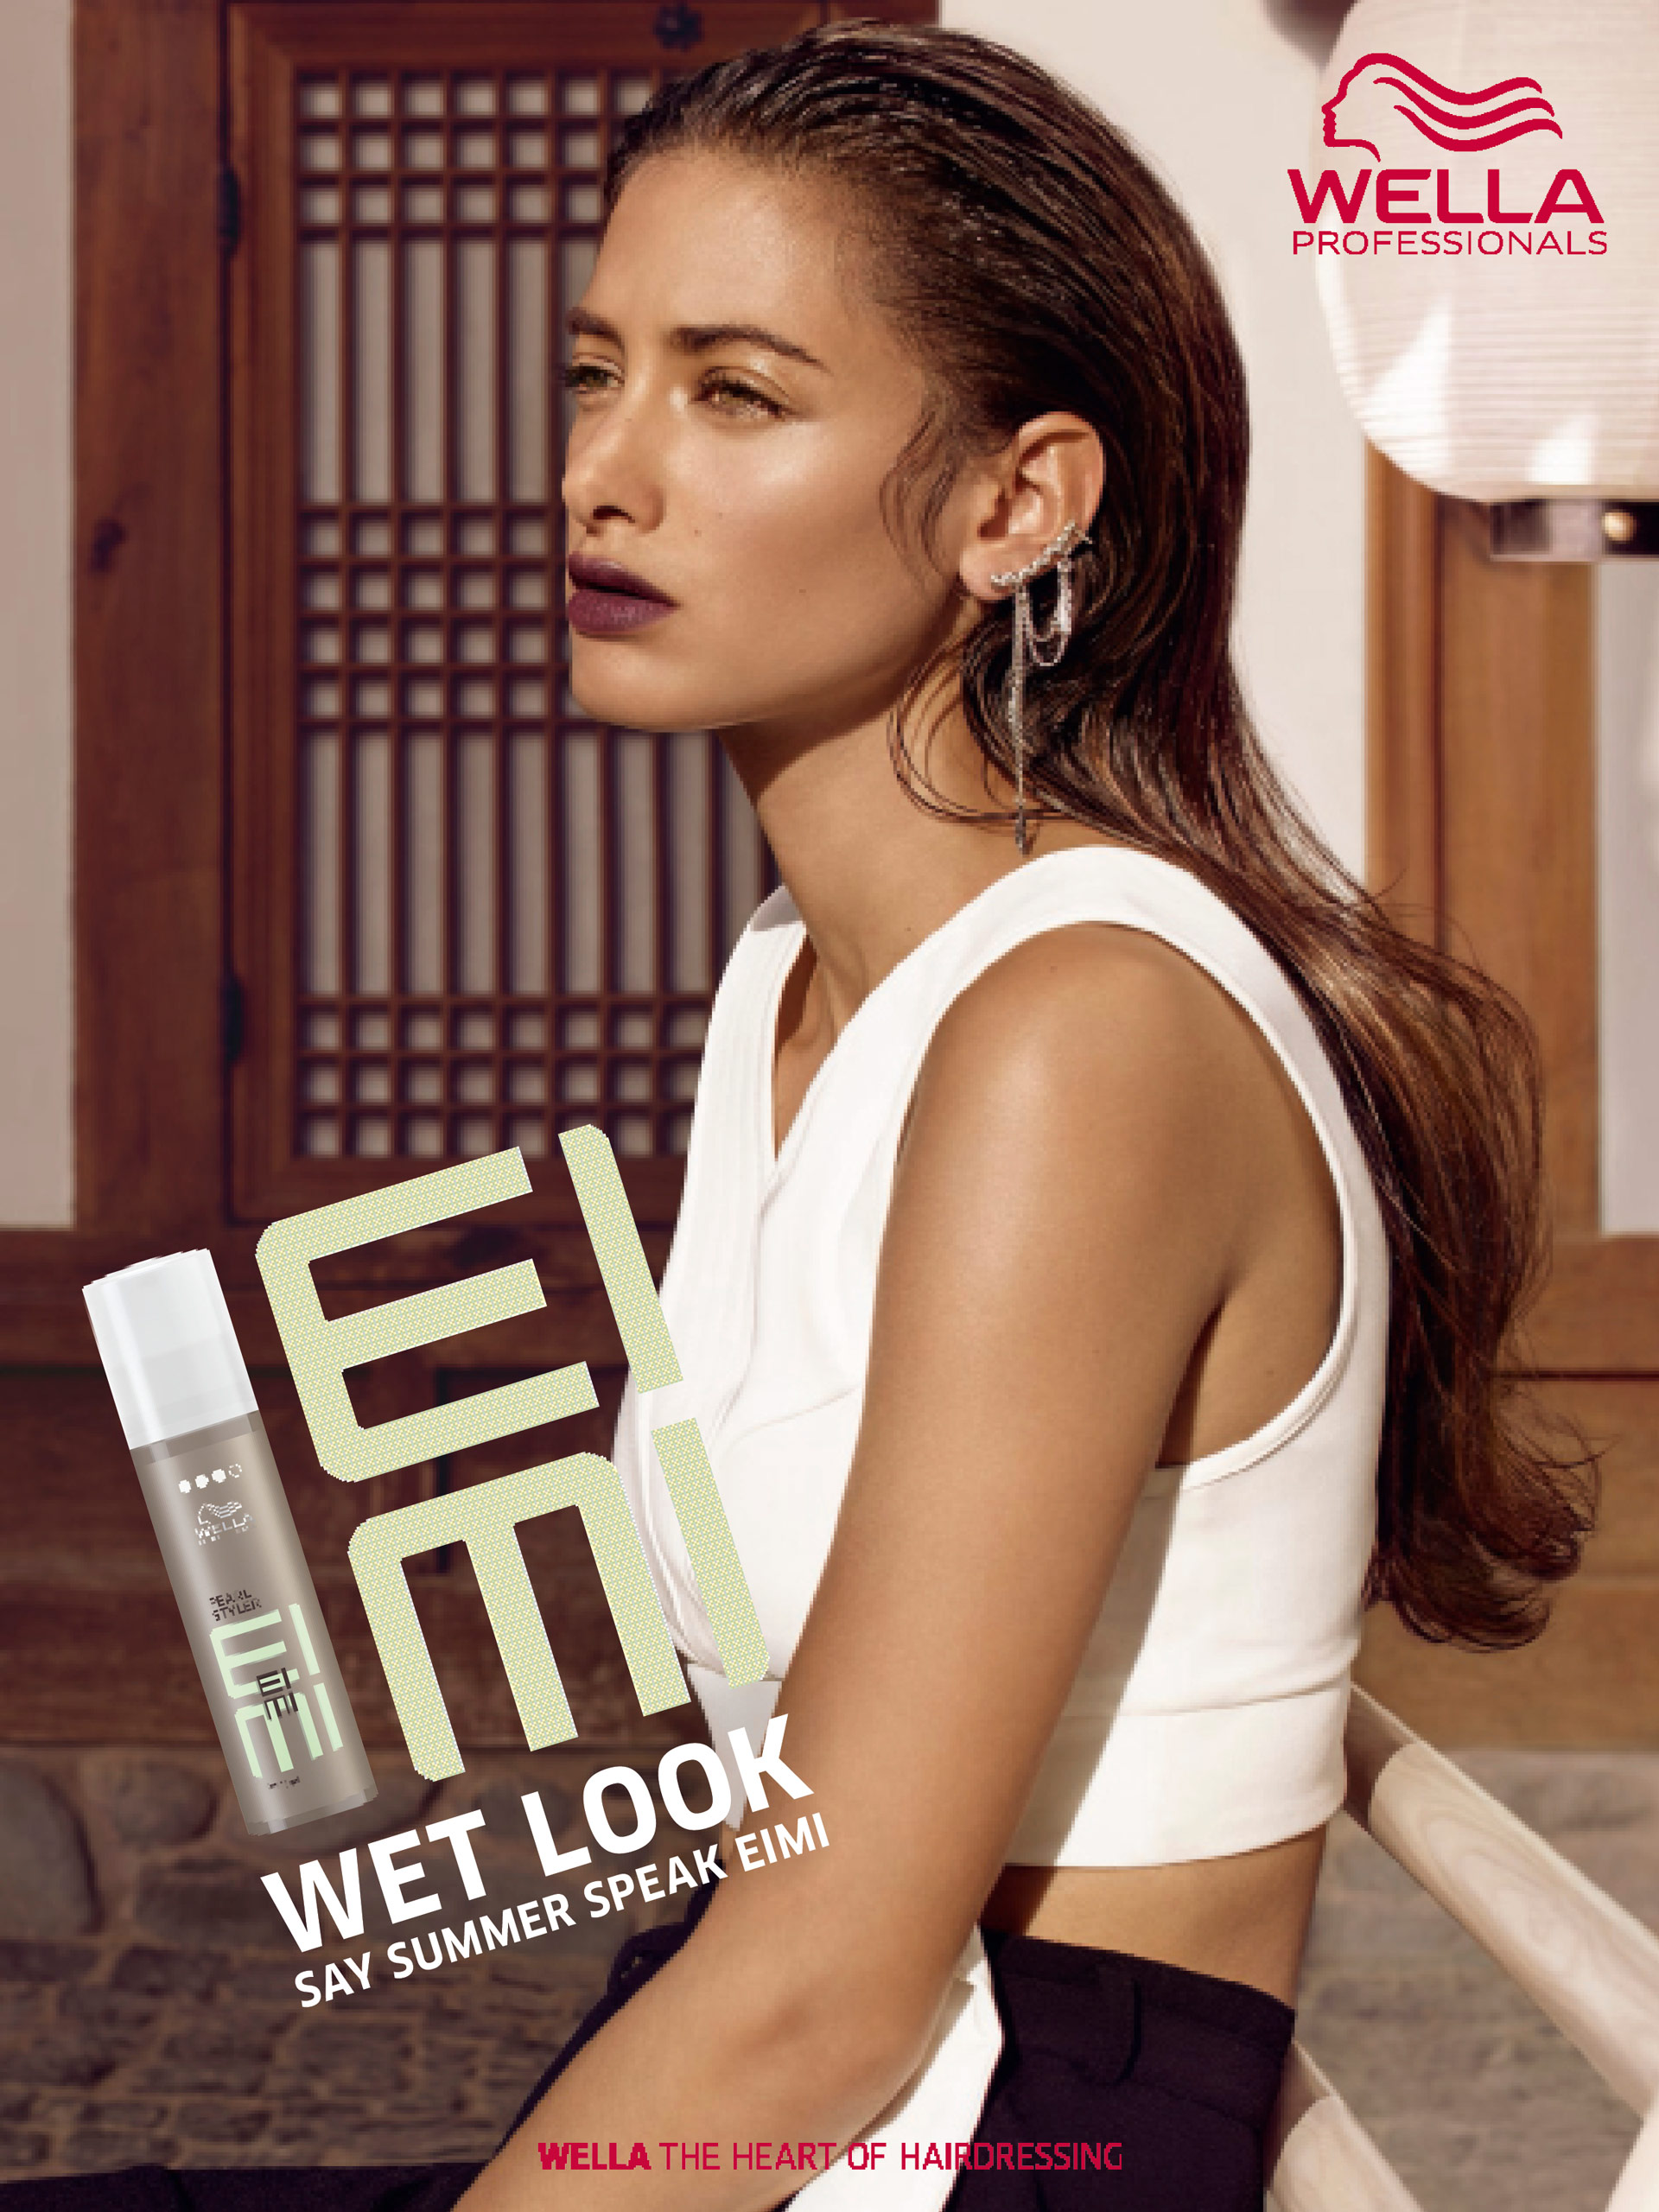 EIMI Dry Bar by Wella Professionals